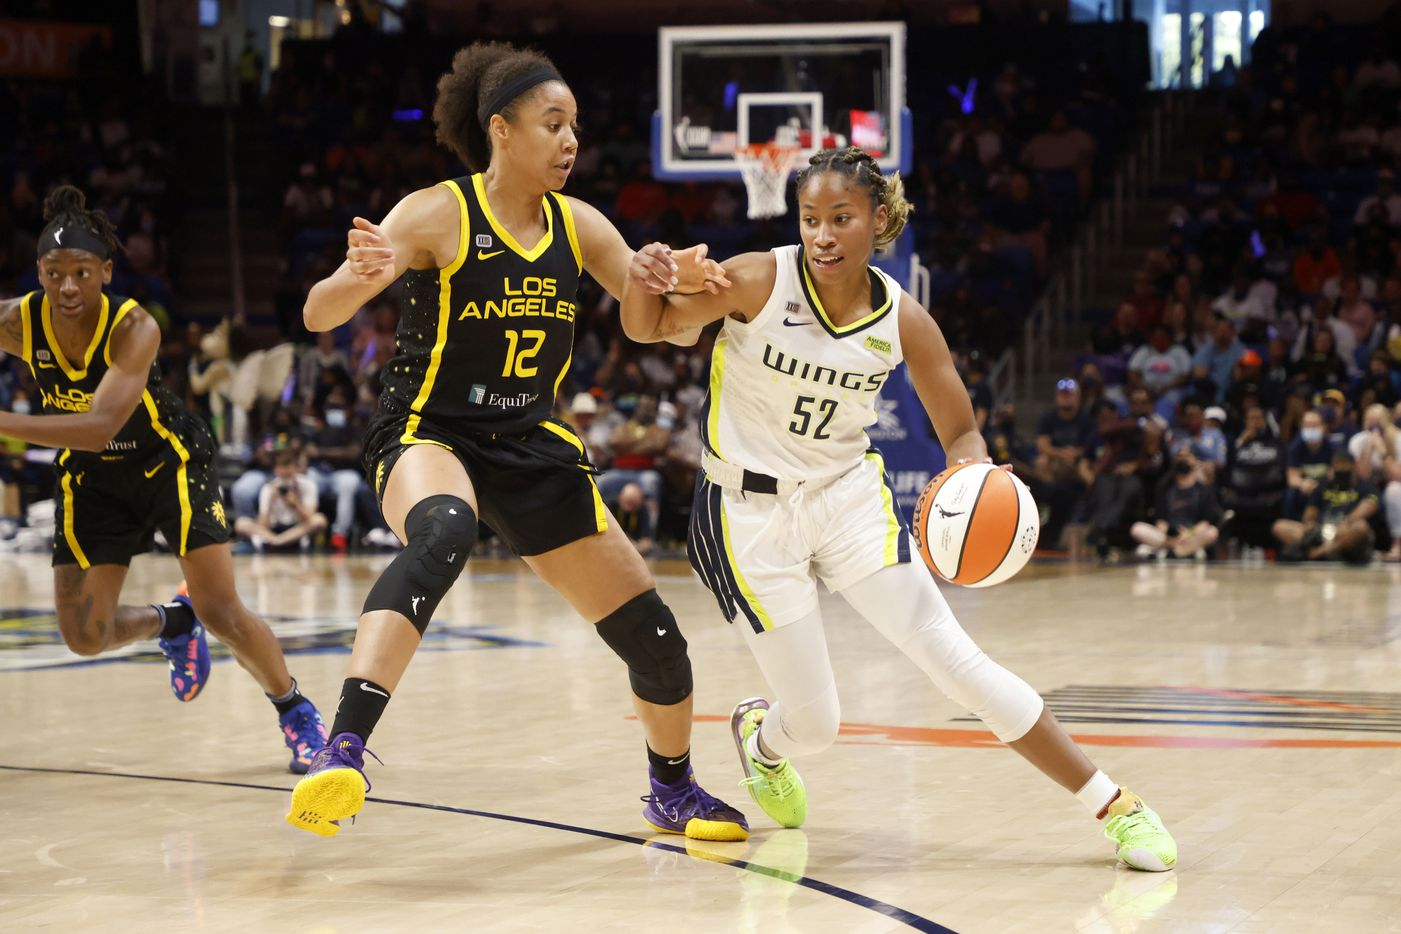 Dallas Wings guard Tyasha Harris (52) drives past Los Angeles Sparks forward Nia Coffey (12) during the second half of a WNBA basketball game in Arlington, Texas on Sunday, Sept. 19, 2021. (Michael Ainsworth/Special Contributor)